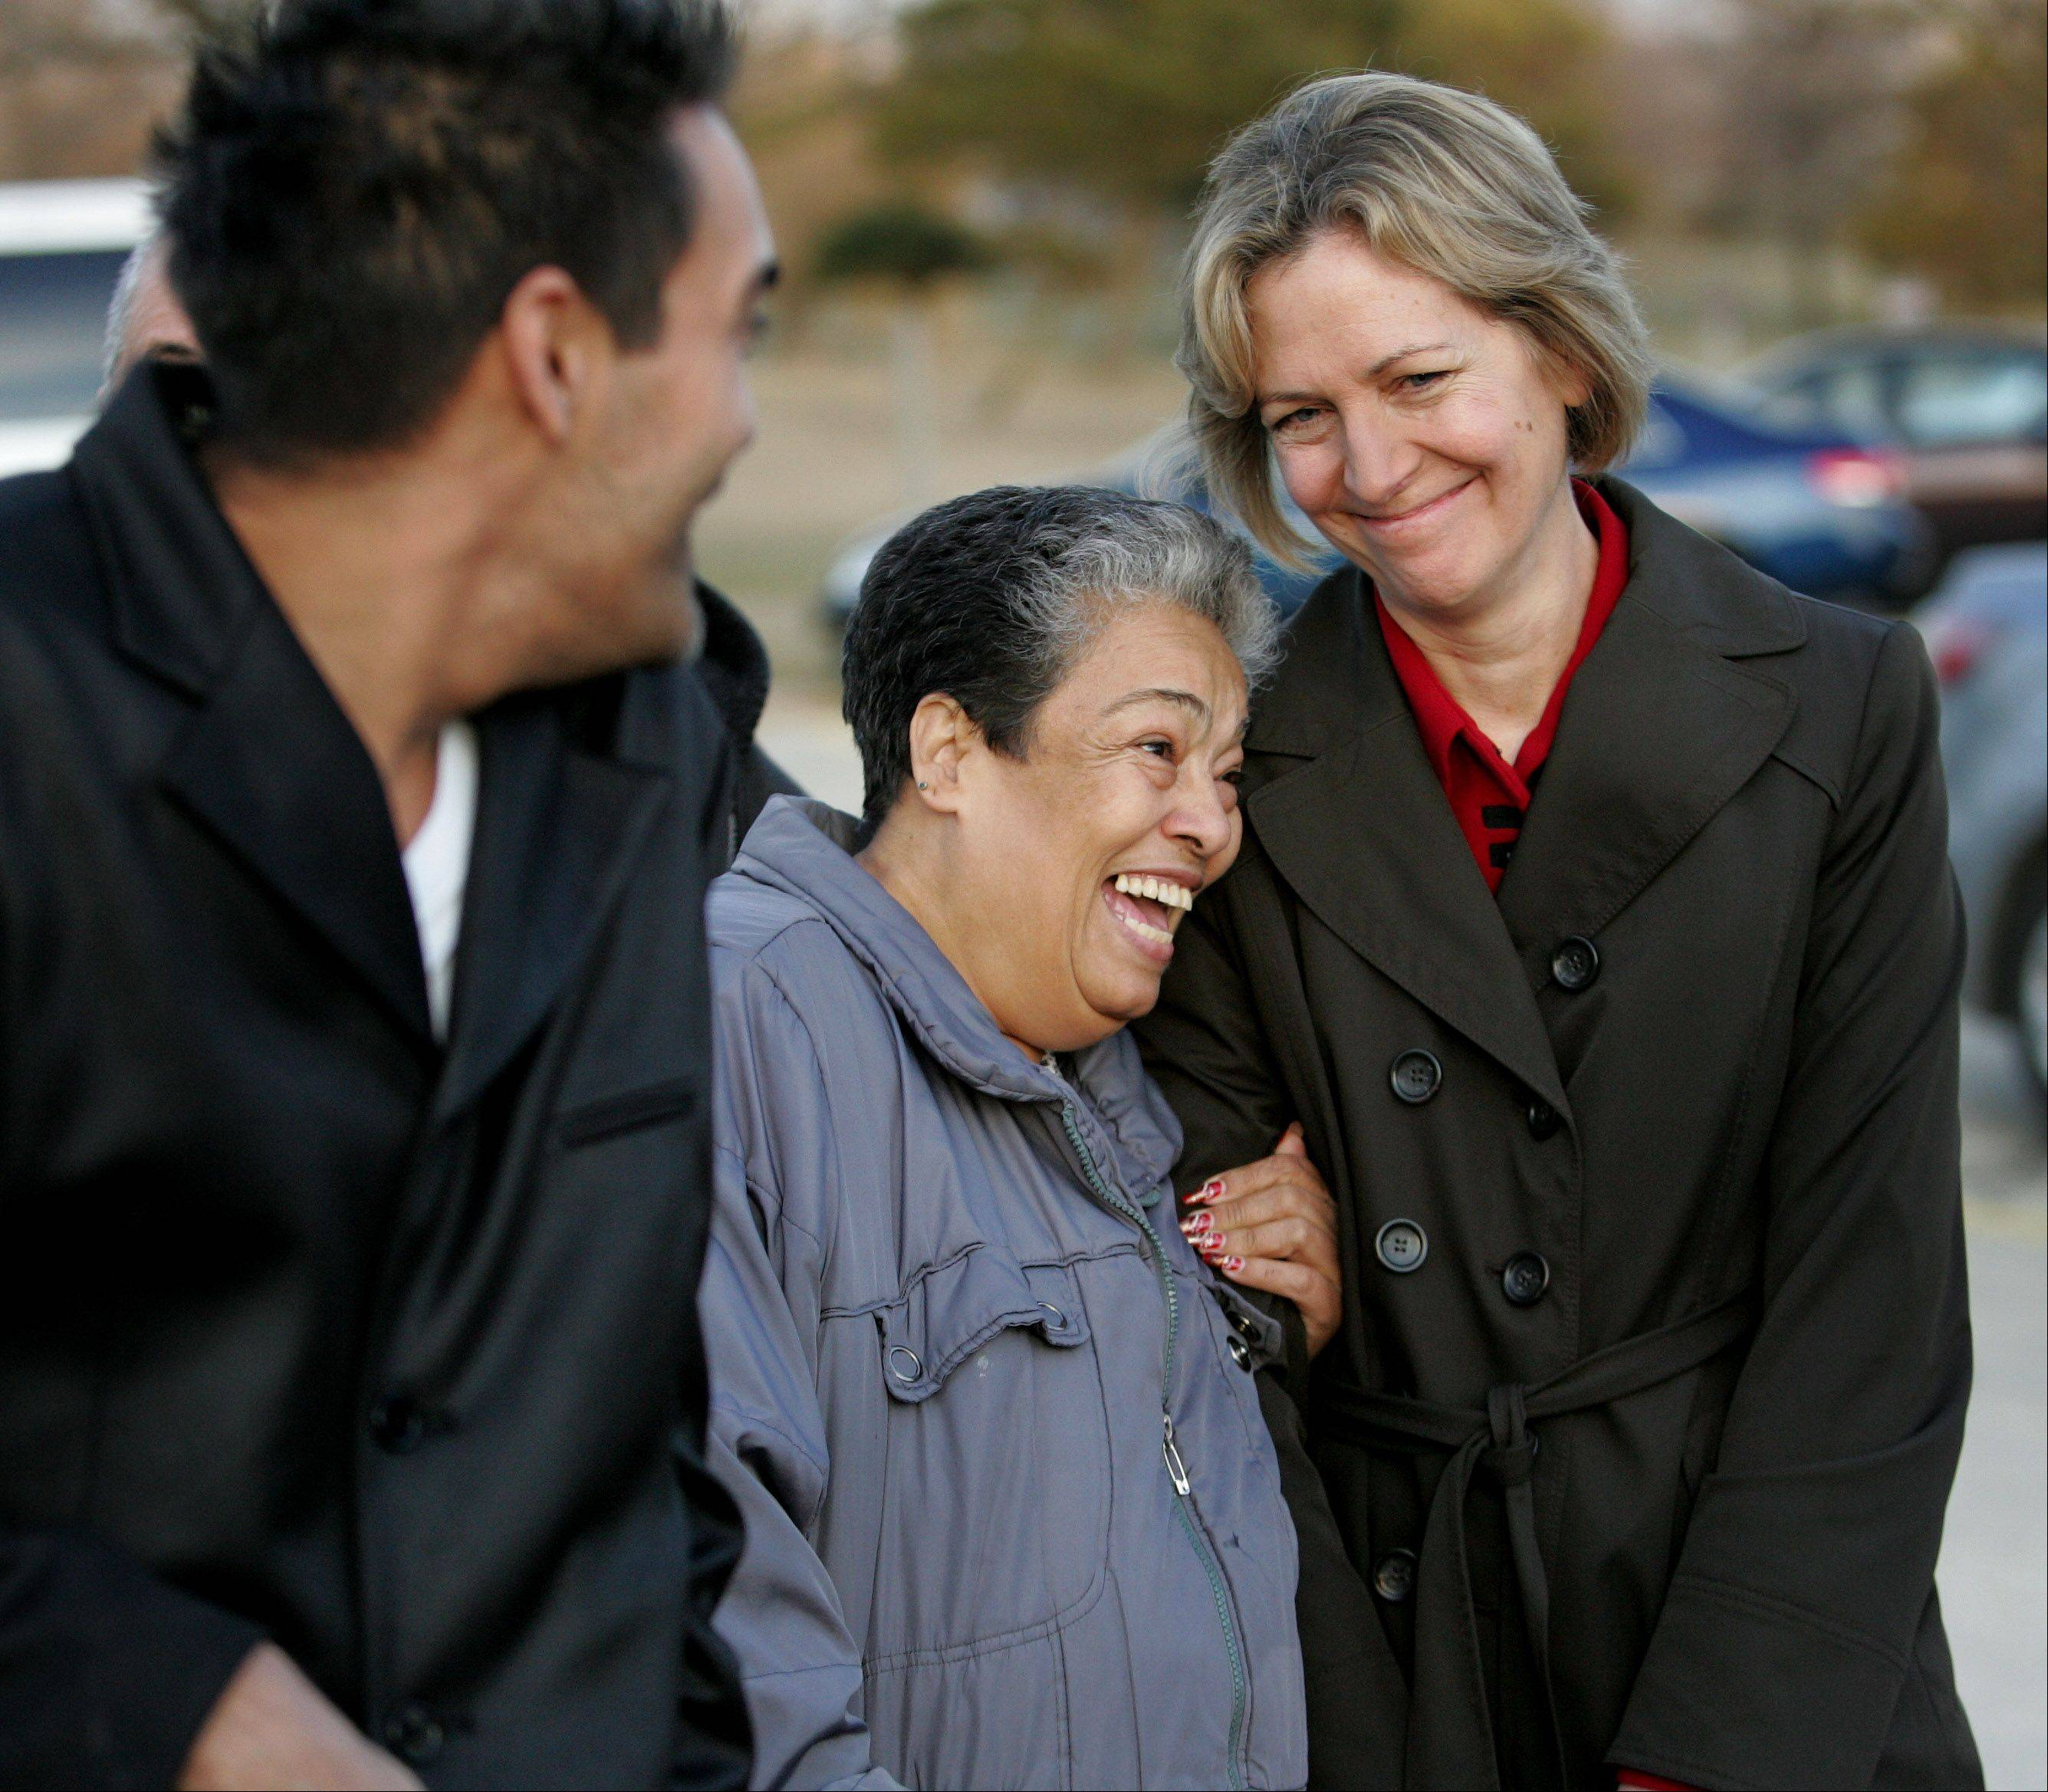 Carmen Rivera gives gives Judy Royal, an attorney with the Center on Wrongful Convictions, a hug as they await the release of Rivera's son Juan Rivera at Stateville Correctional Center in Crest Hill.